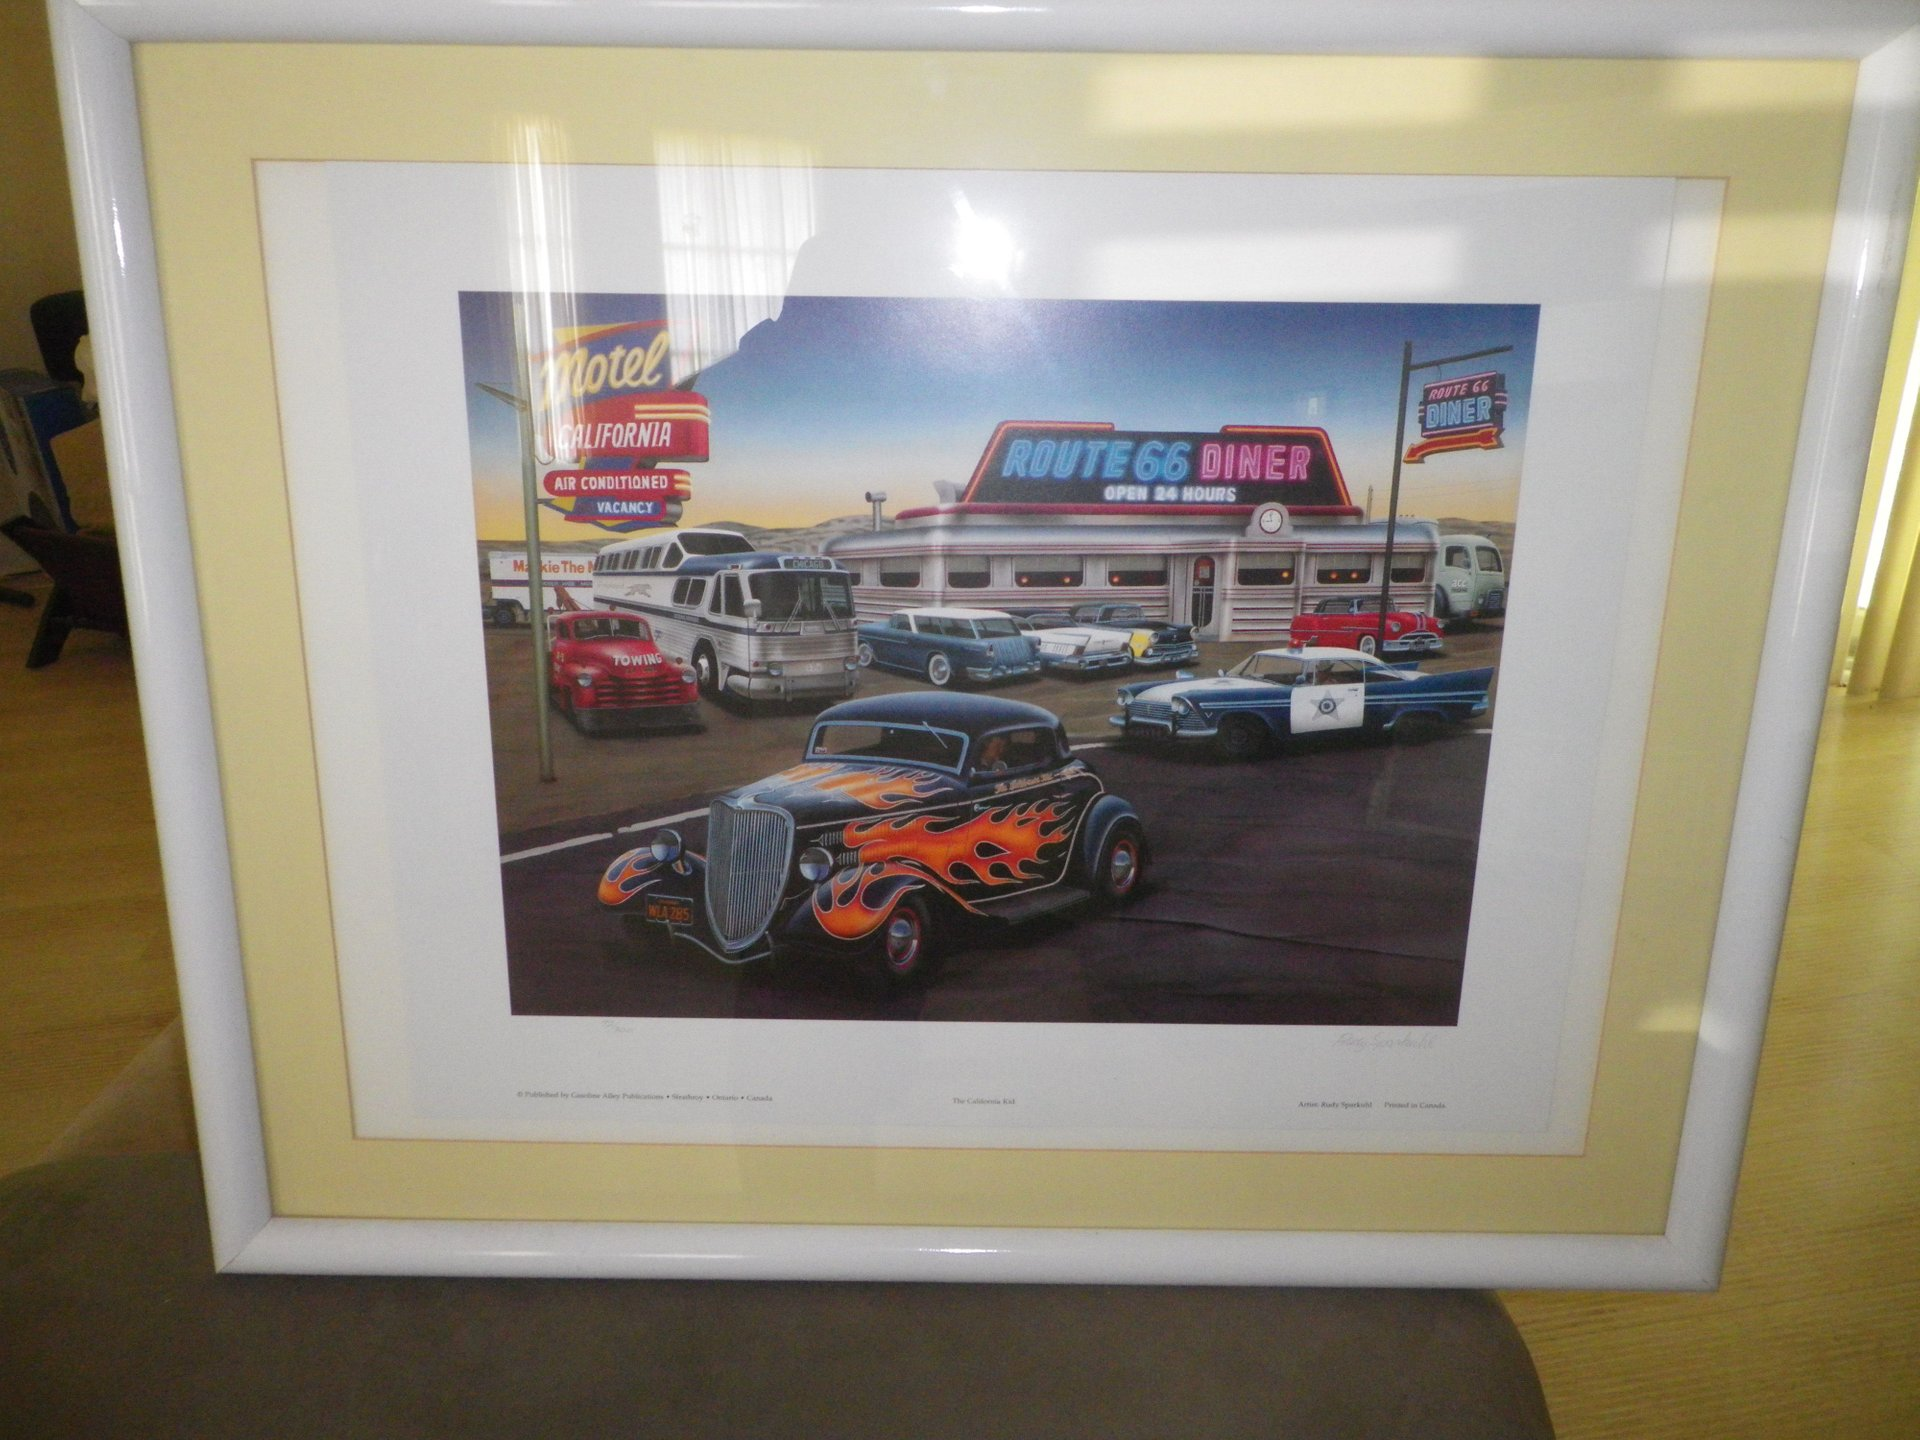 Collectible item route 66 diner print